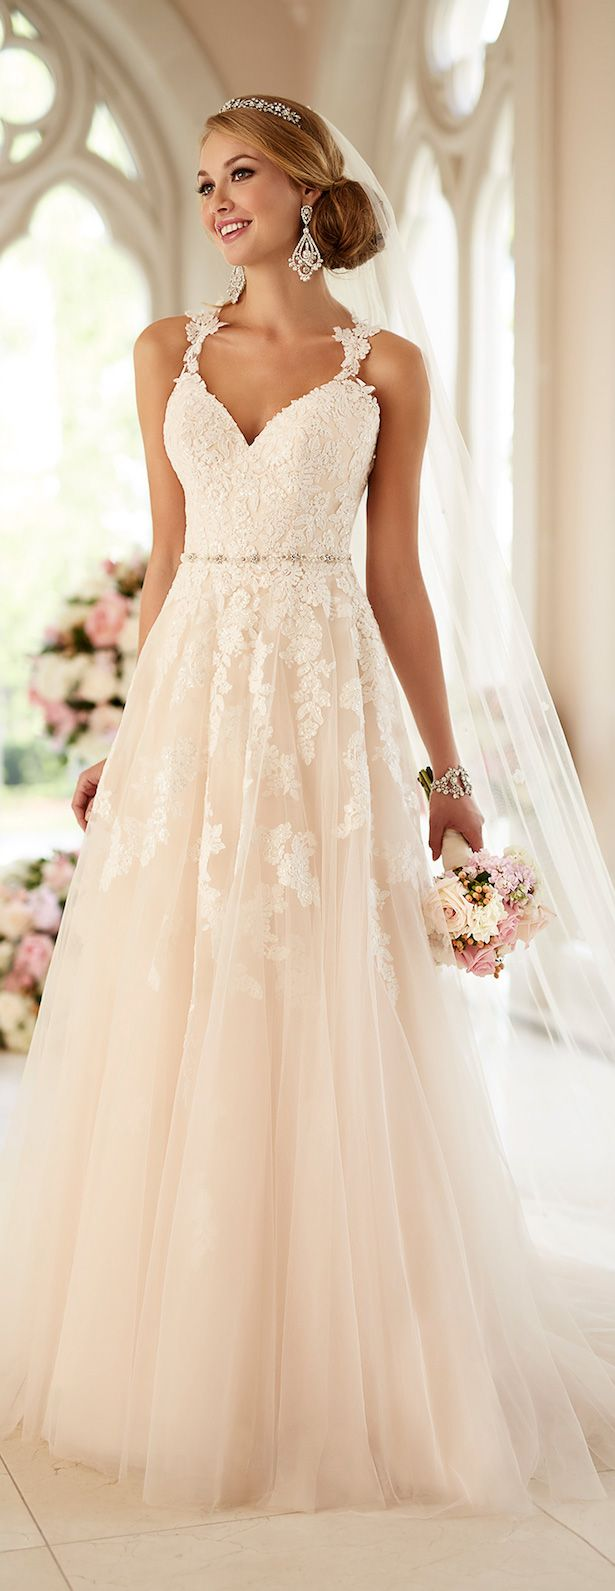 Walk down the aisle in this beautiful lace dress with the perfect amount of detail. #springwedding